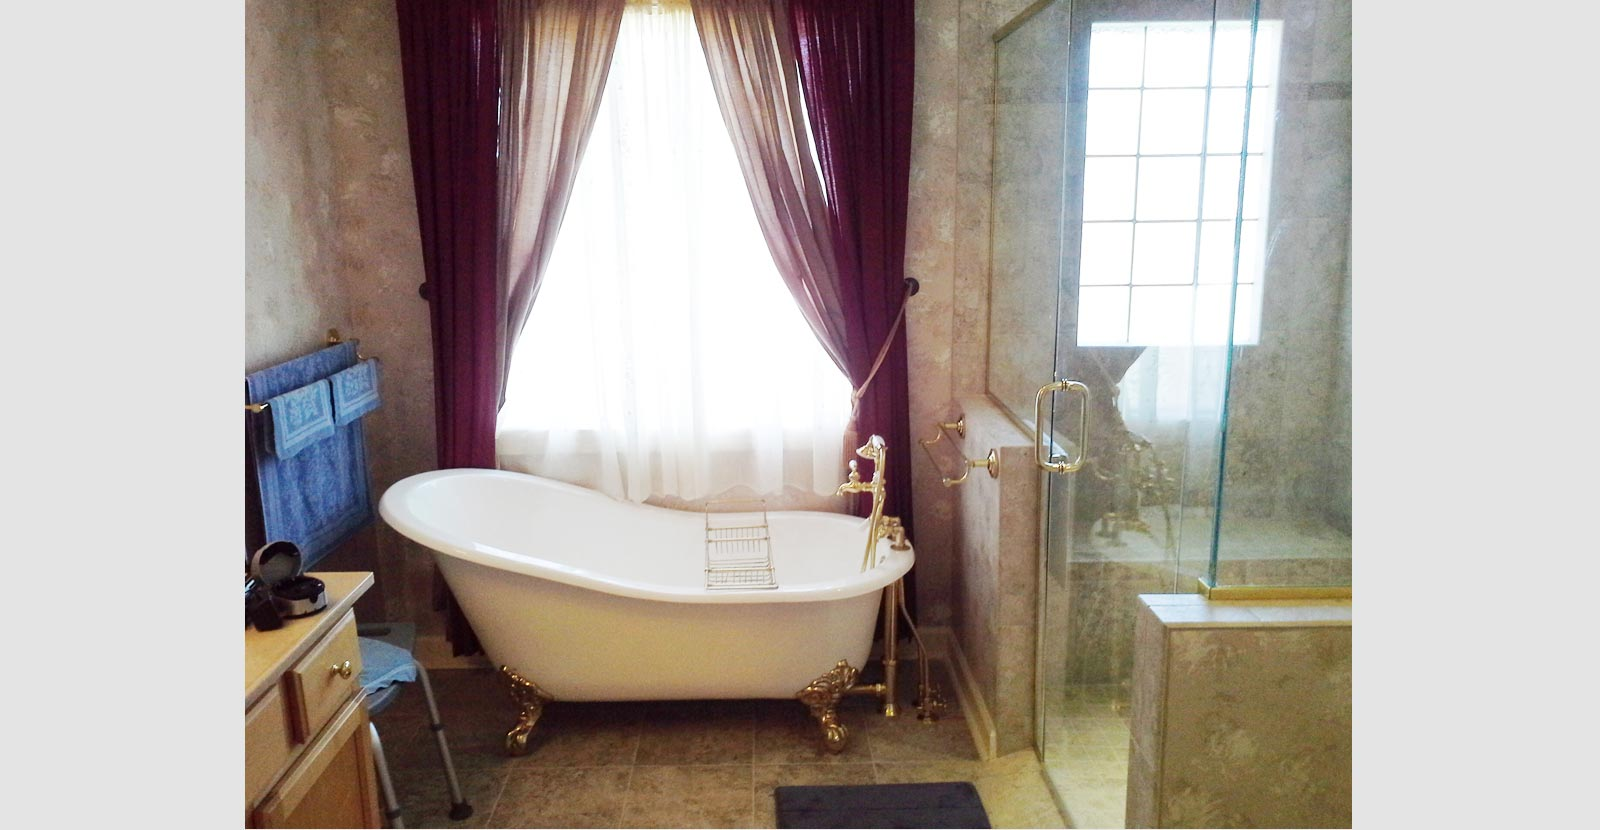 Bathroom Remodeling Yorktown Va bathroom remodeling contractor - yorktown va | hatchett contractors